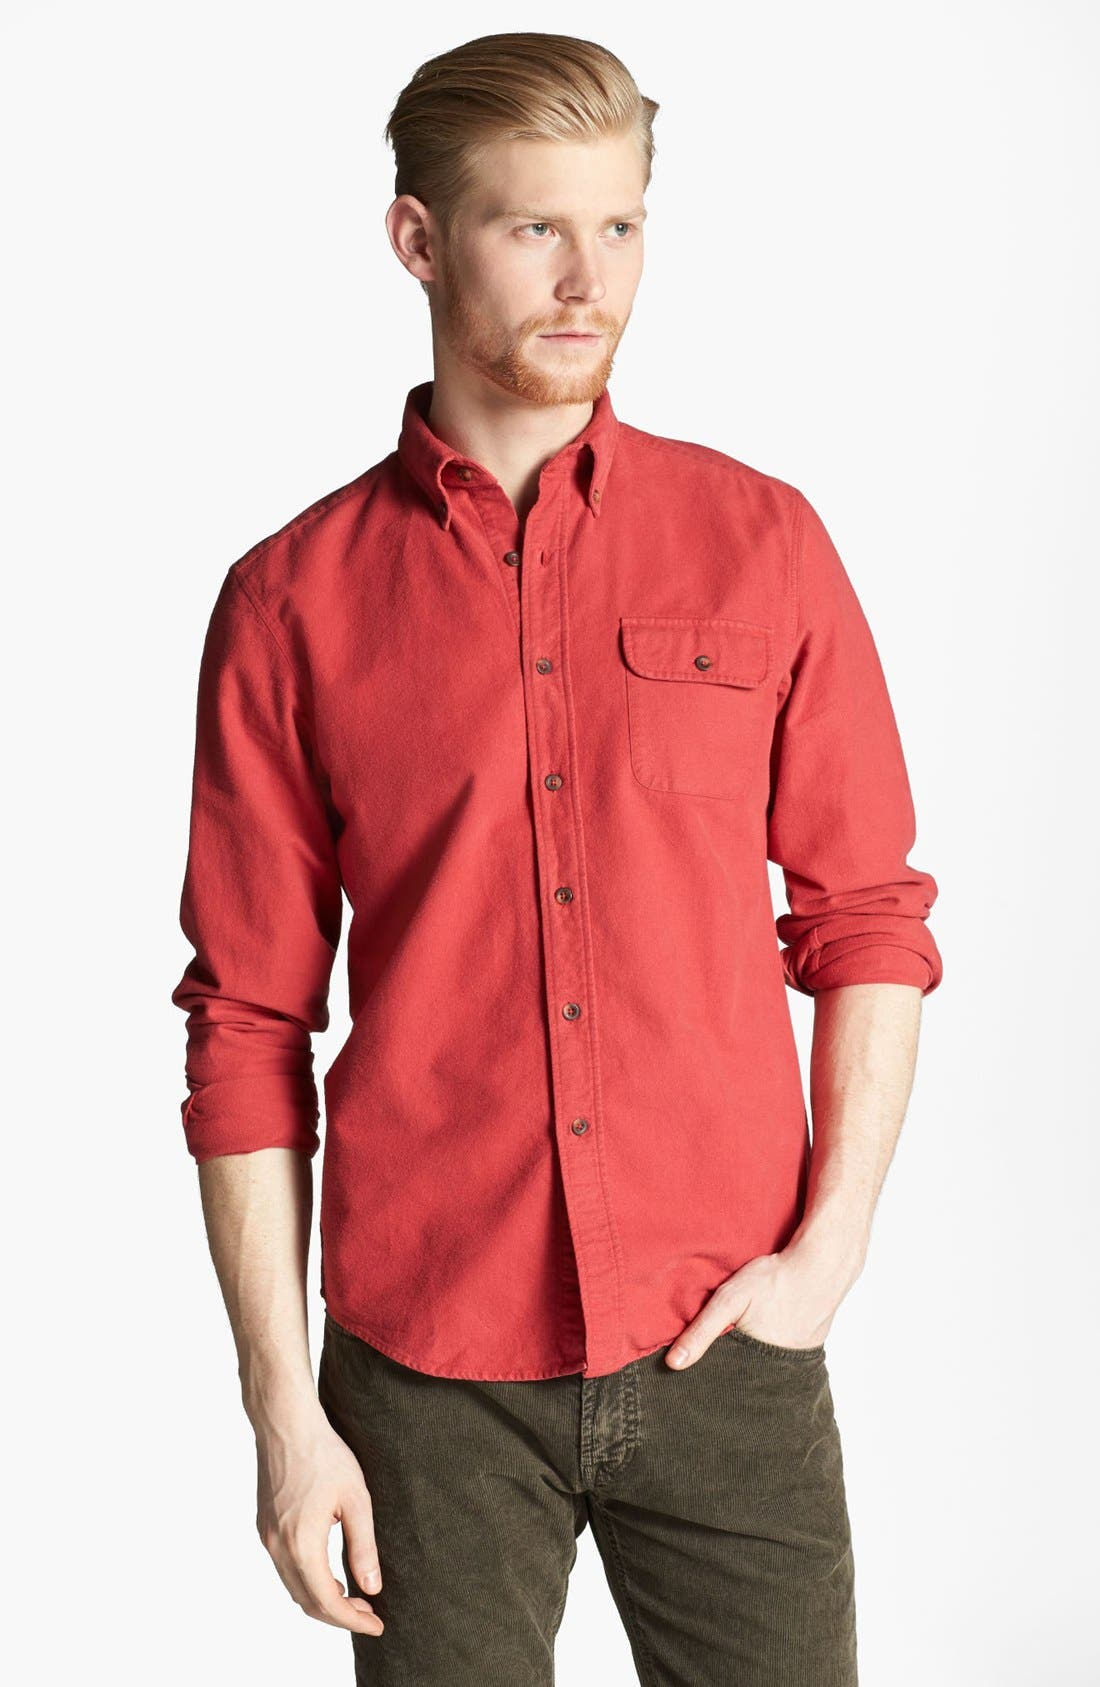 Alternate Image 1 Selected - Gant by Michael Bastian Brushed Cotton Sport Shirt